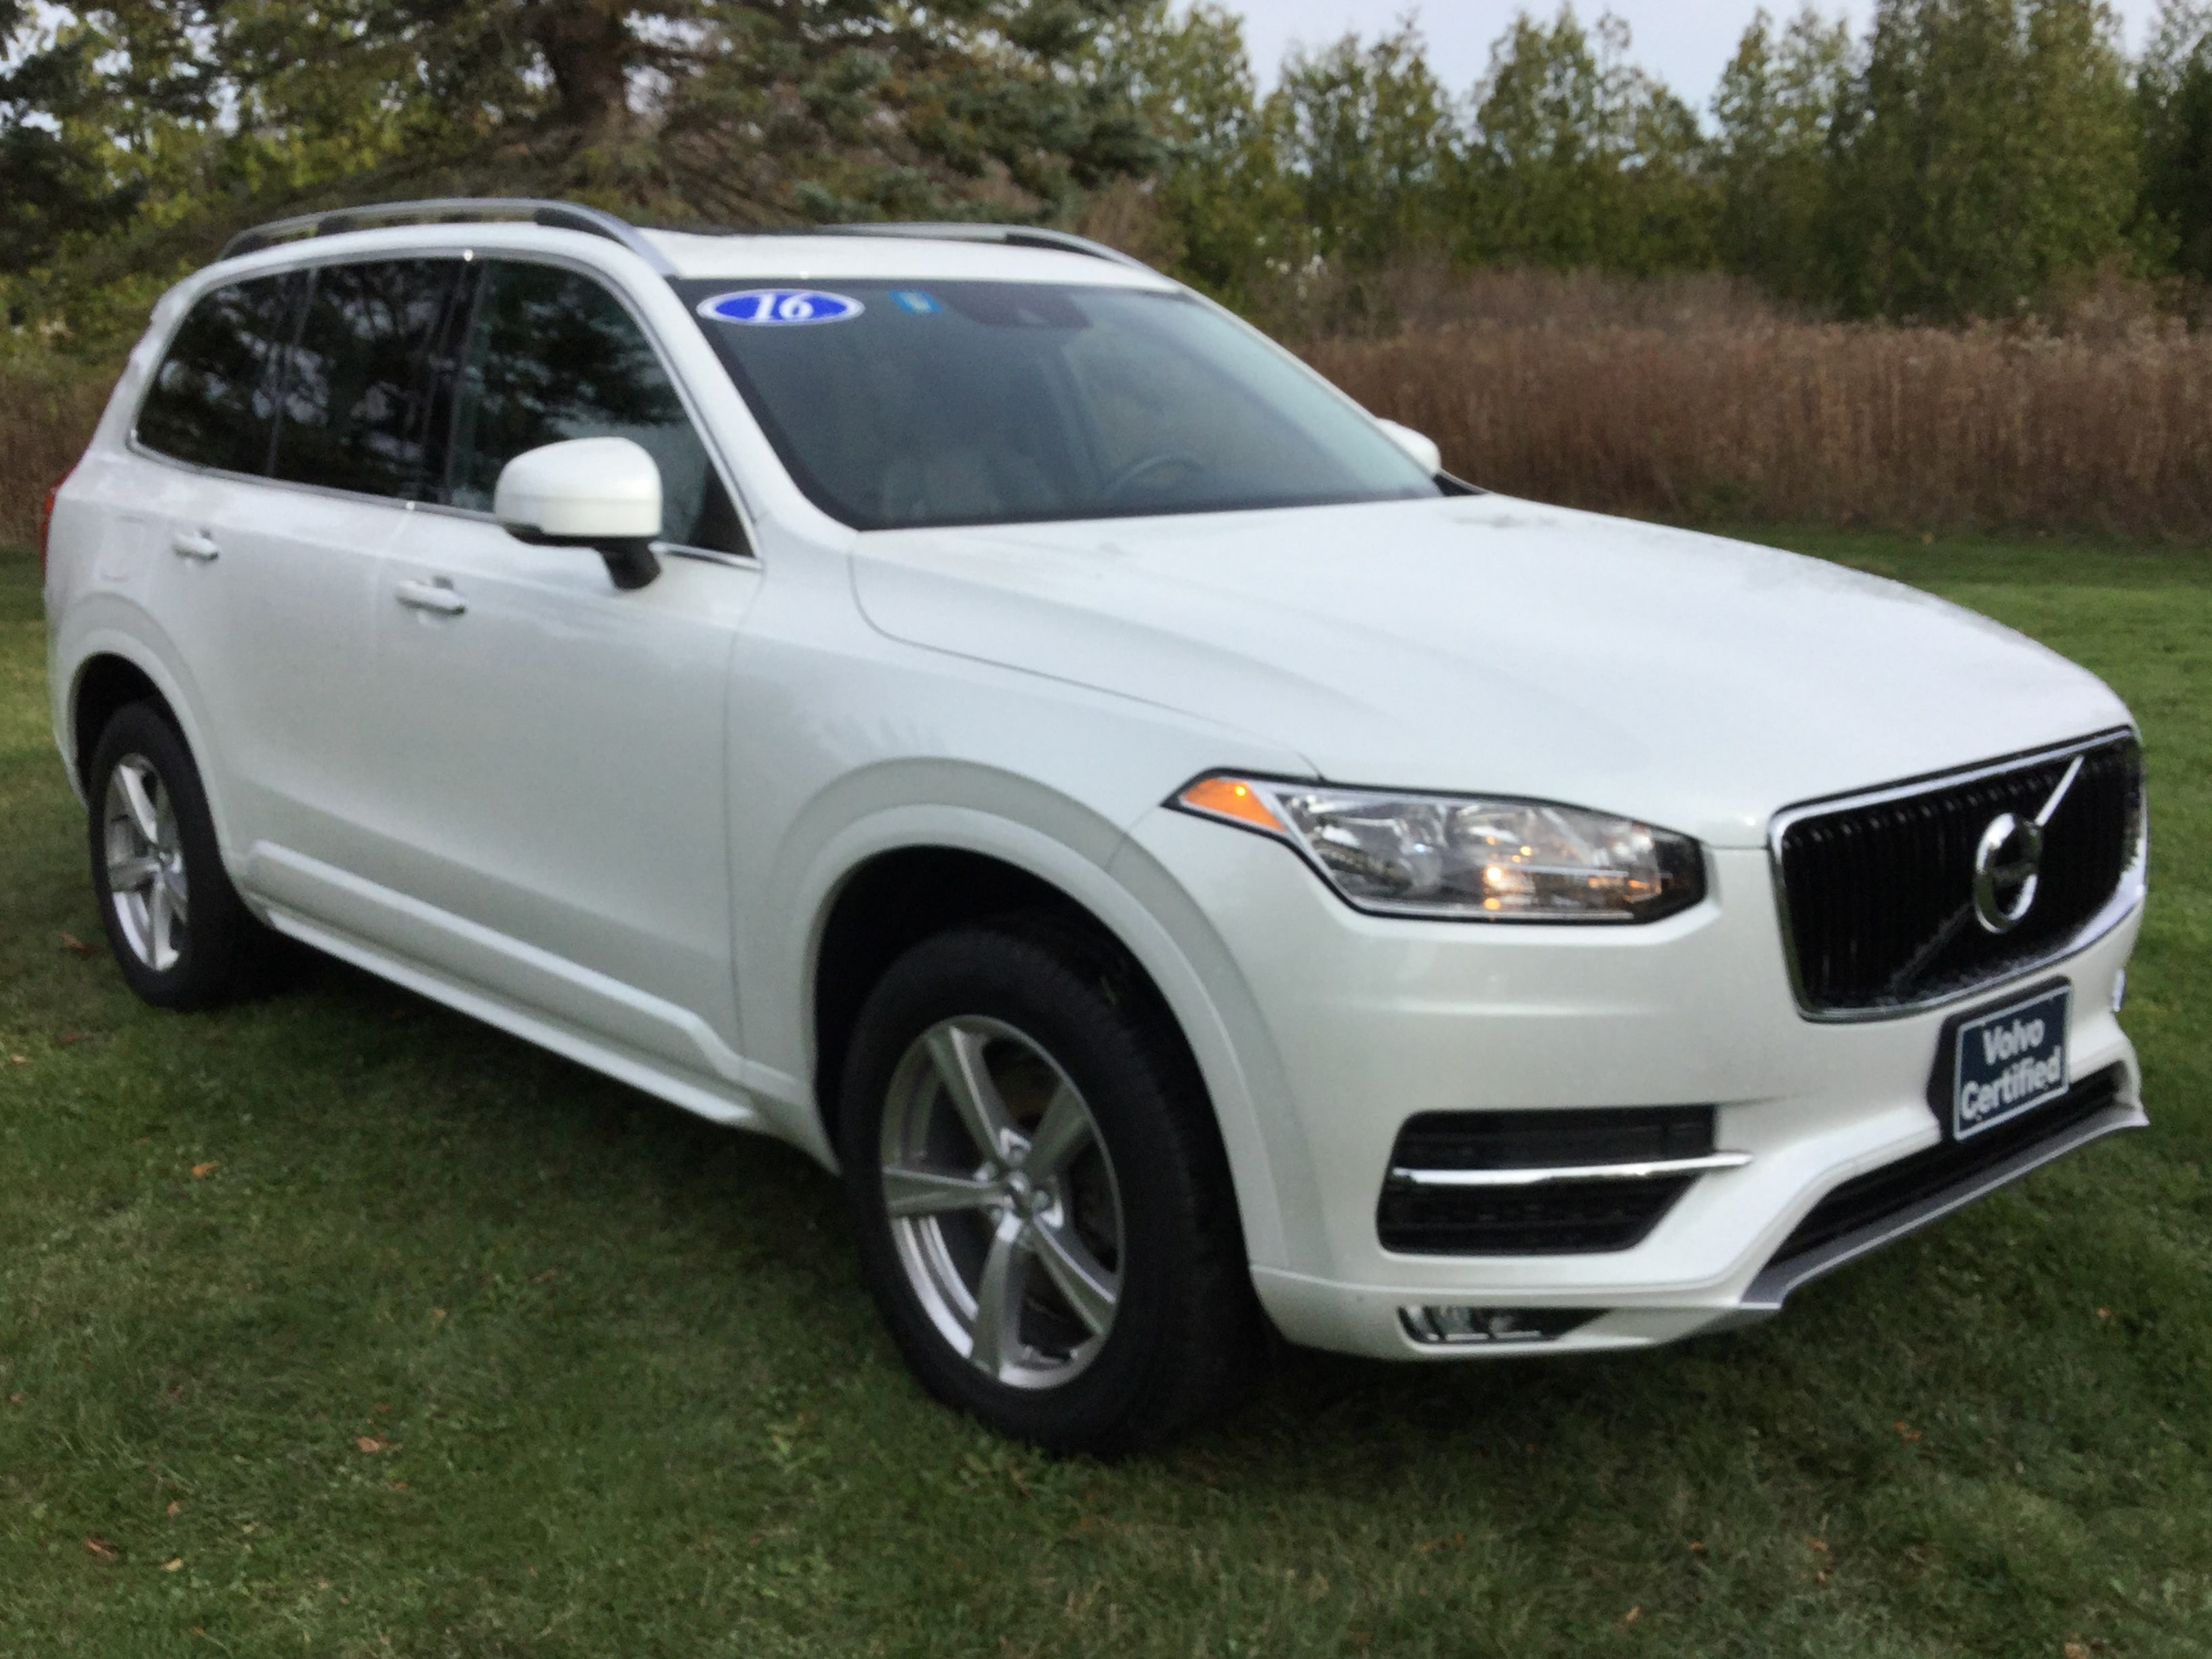 Almartin Volvo Cars | Vehicles for sale in Shelburne, VT 05482-6476